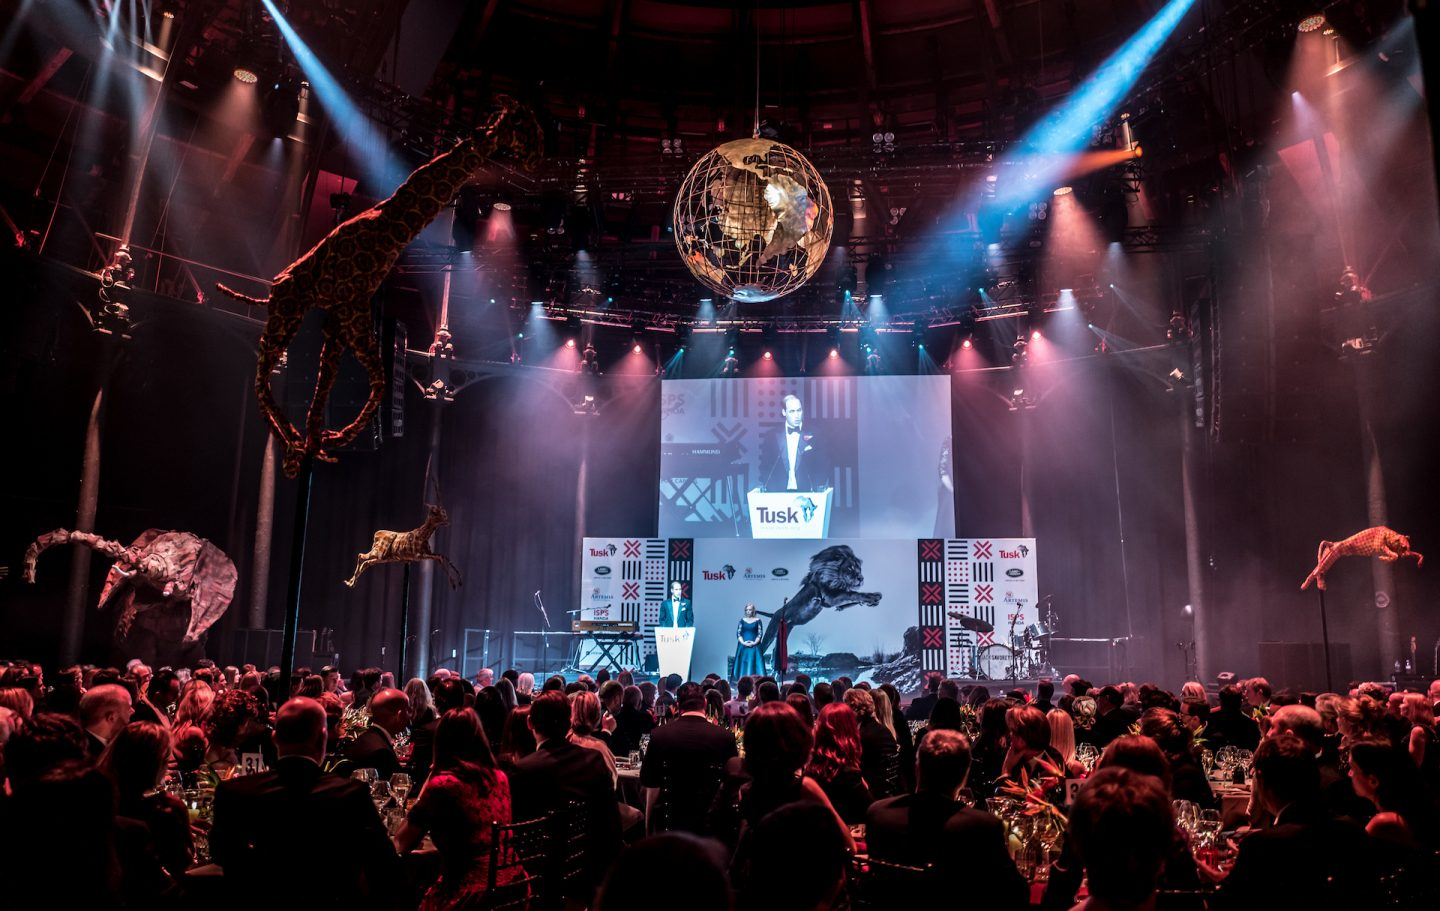 Tusk Ball 2017 at the Roundhouse